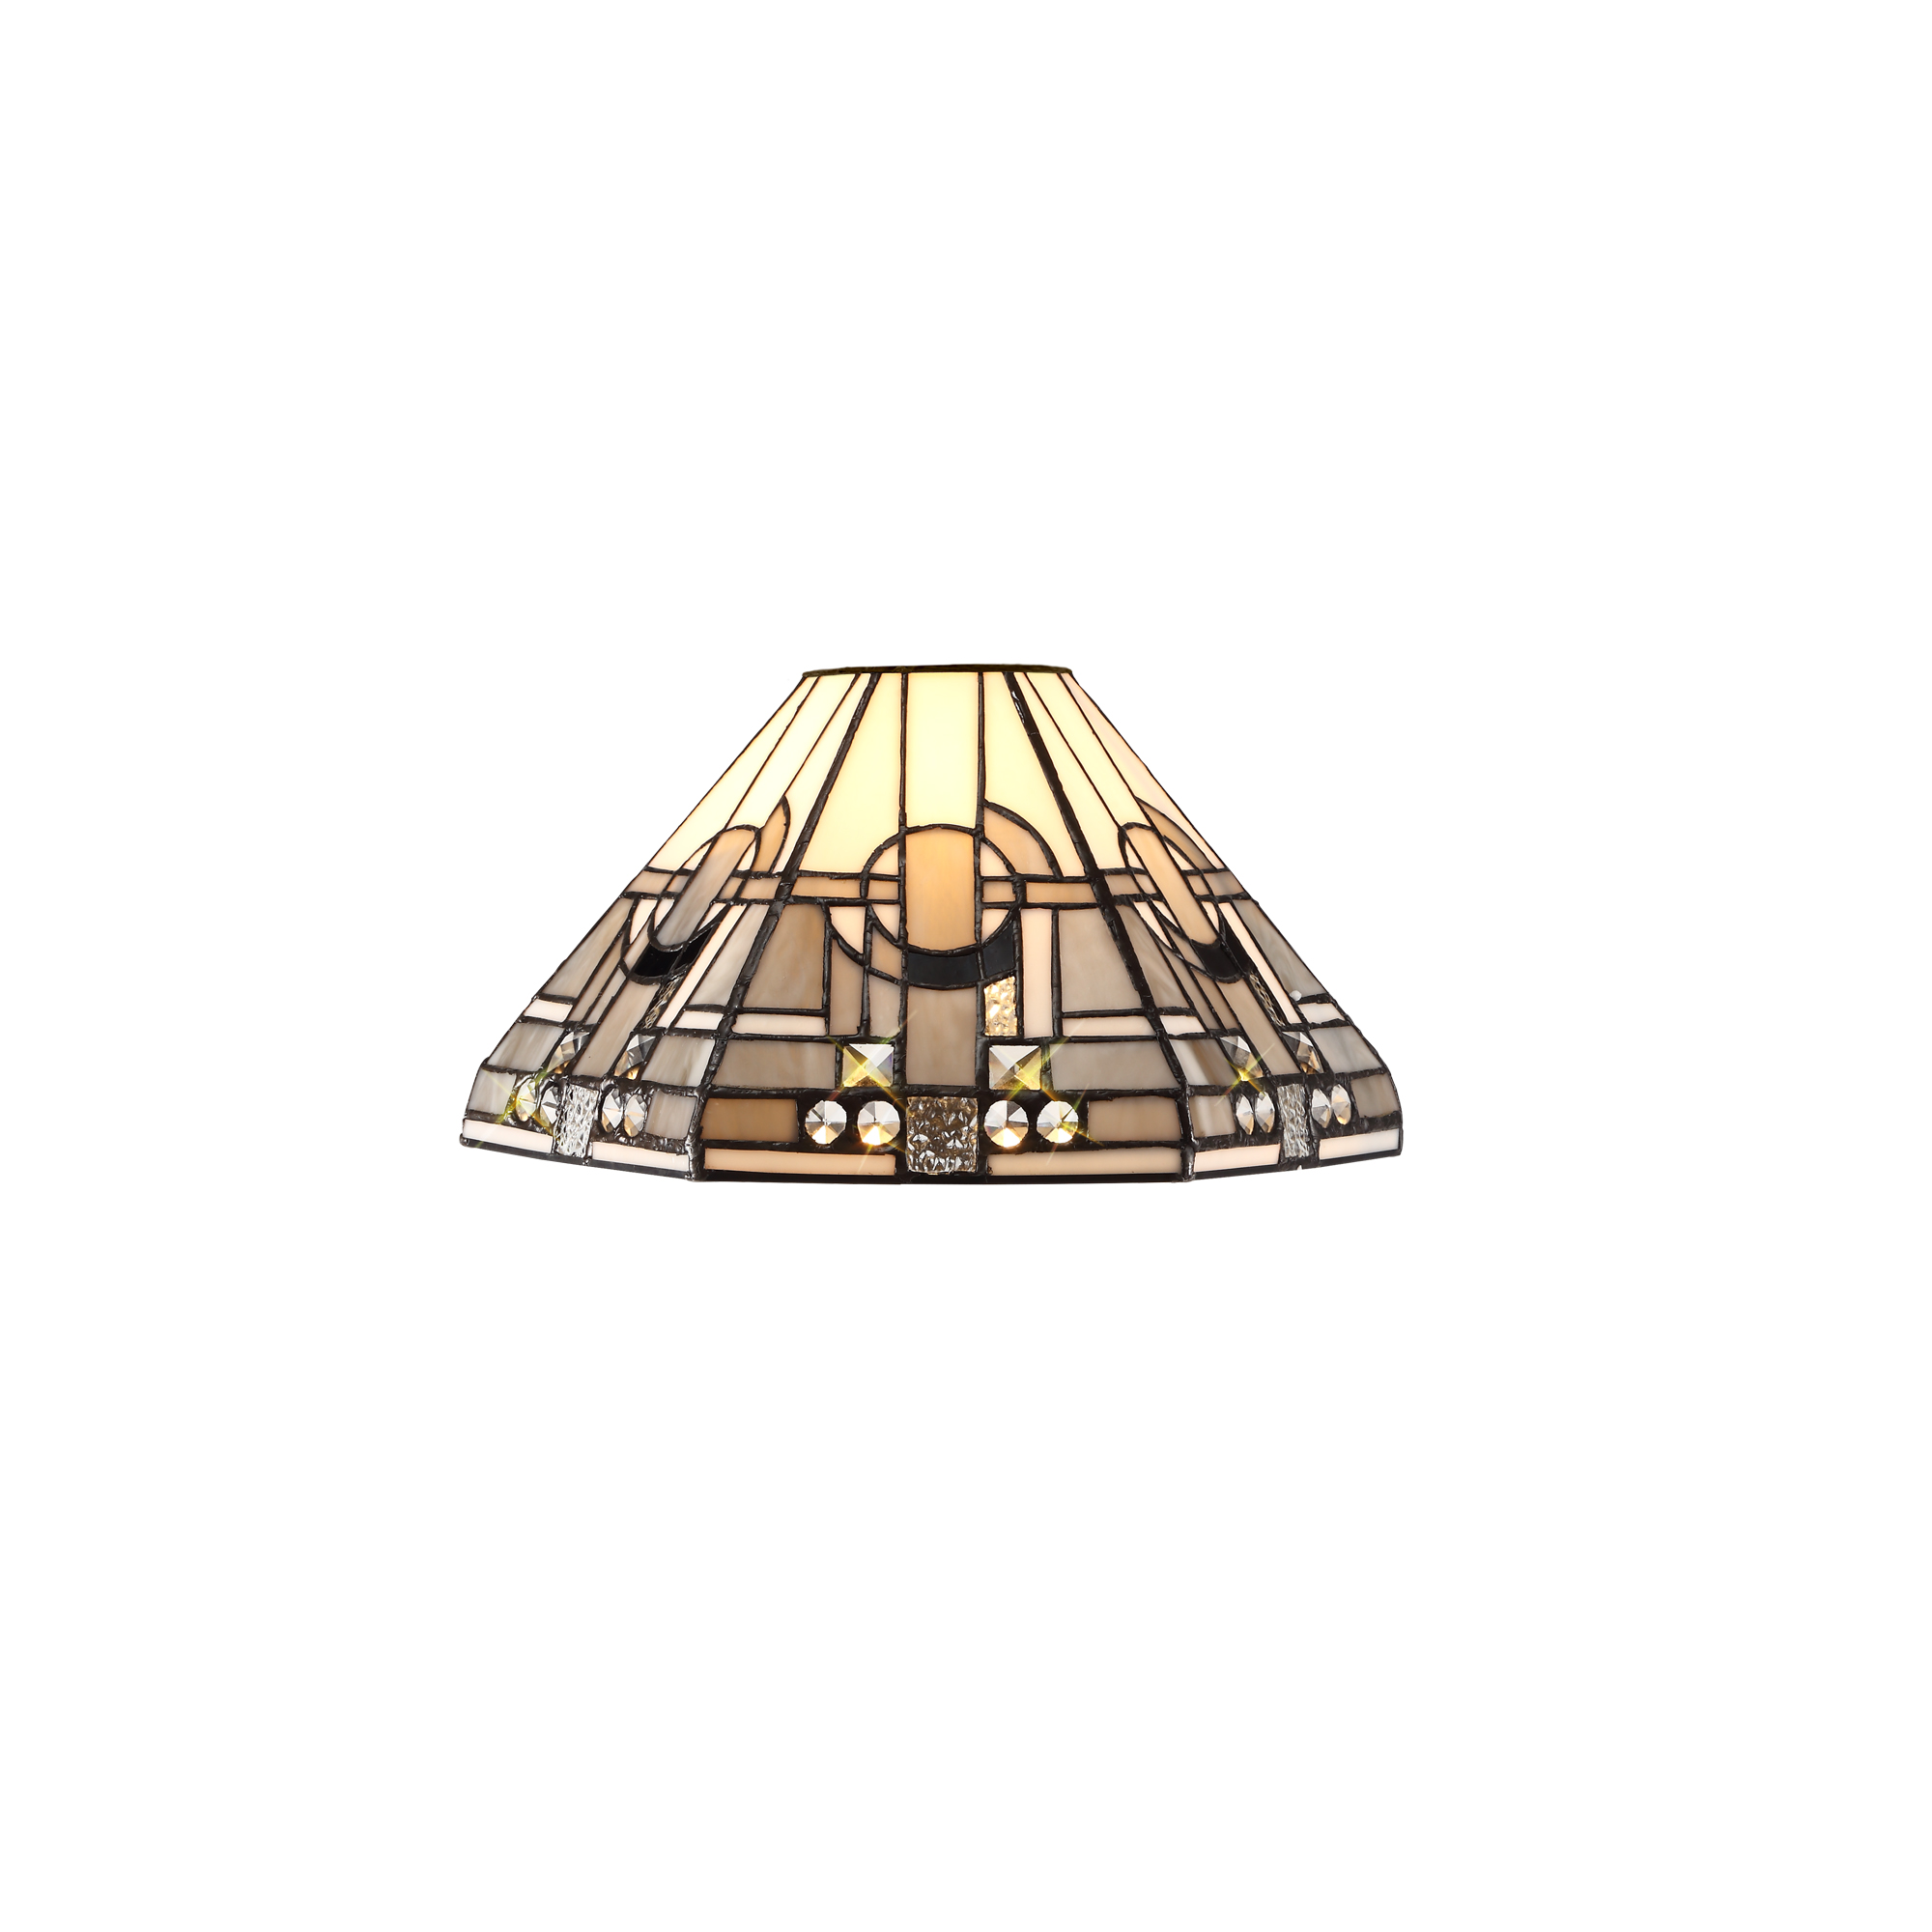 Tiffany 30cm Non-electric Shade Suitable For Pendant/Ceiling/Table Lamp, White/Grey/Black/Clear Crystal